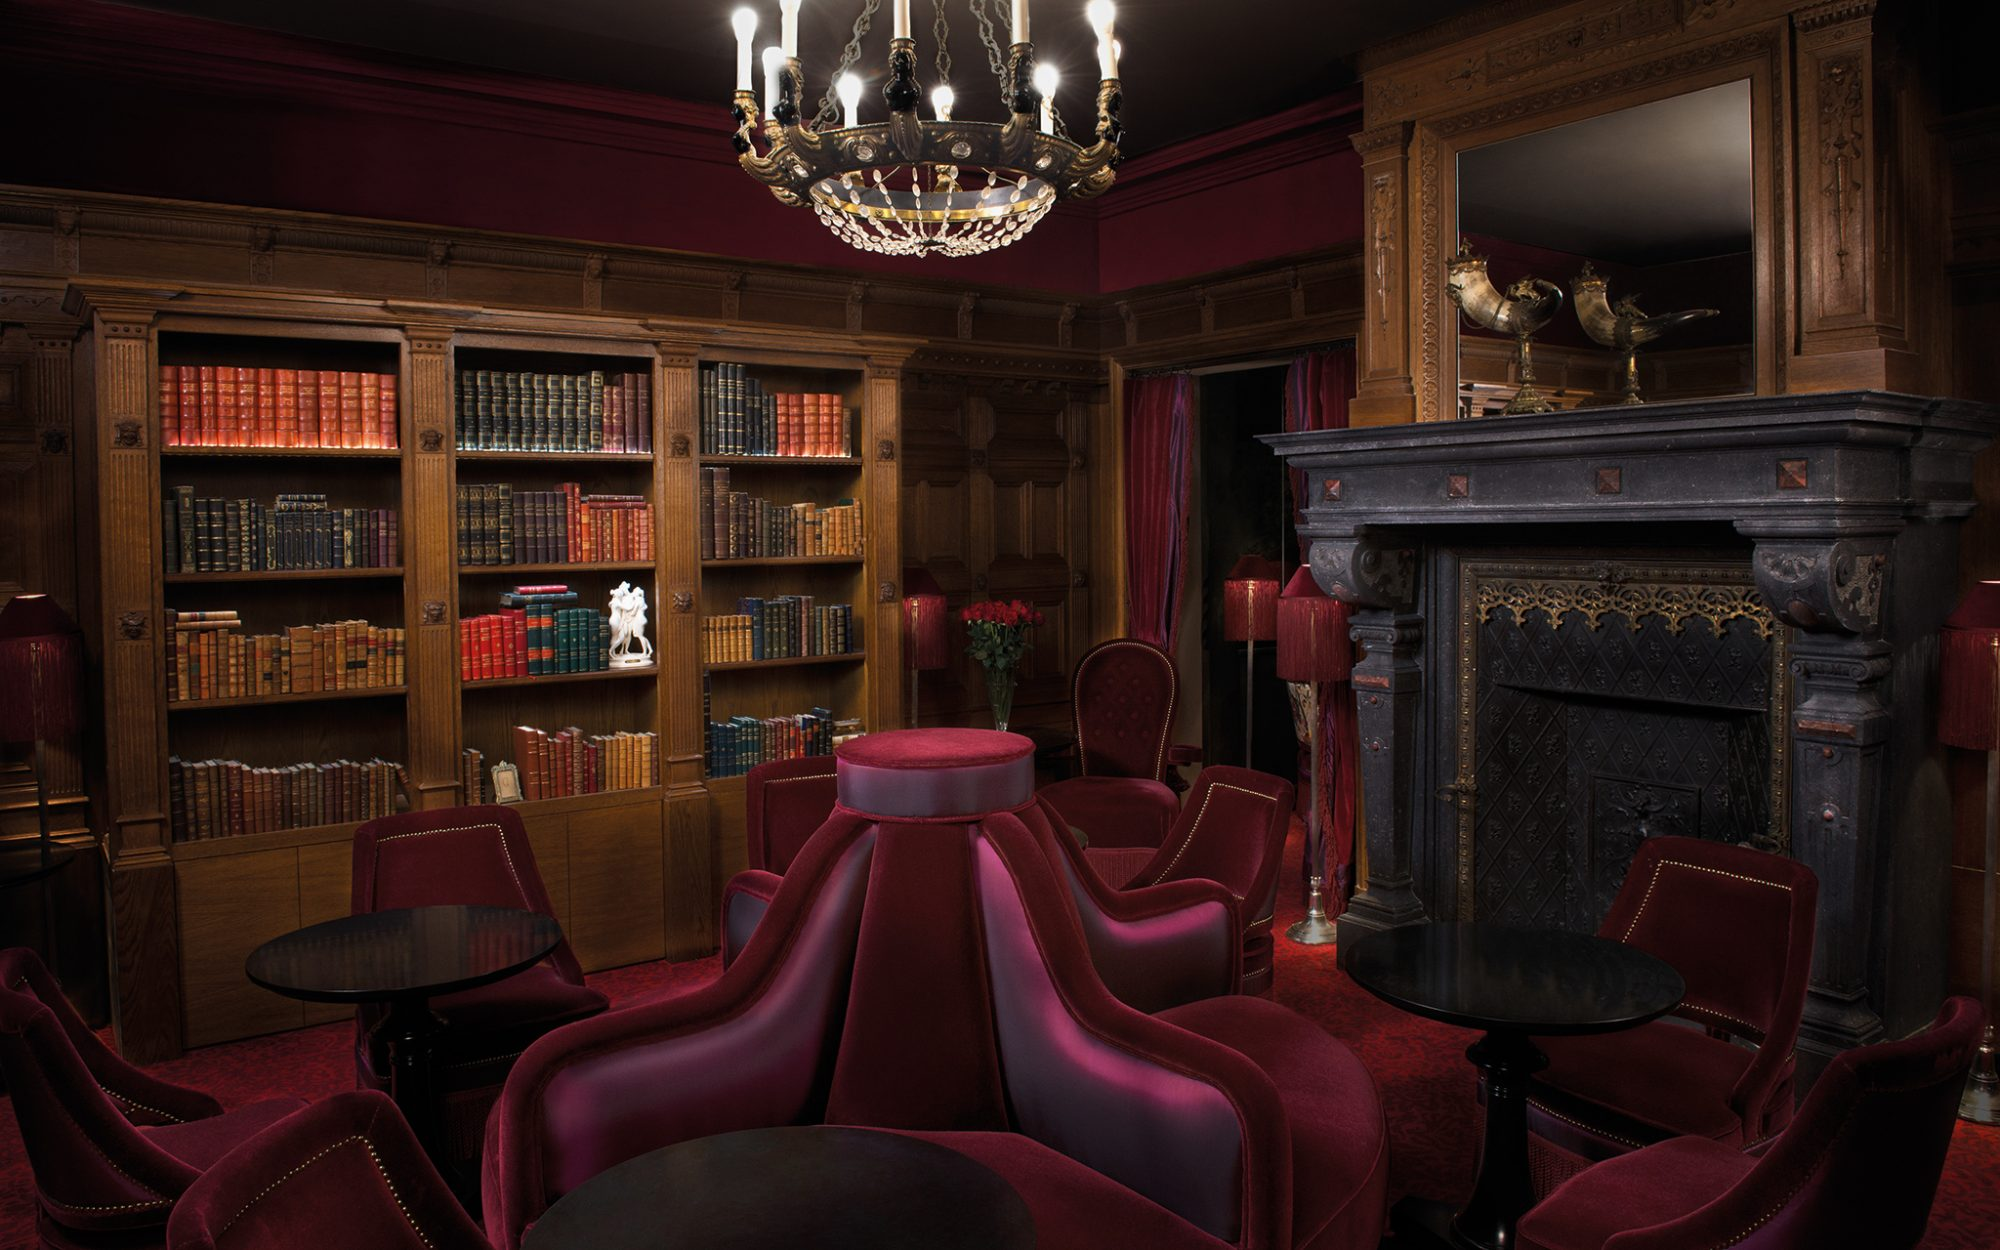 New to Paris: a Vampy Hotel With Design Steeped in Sex: Lounge